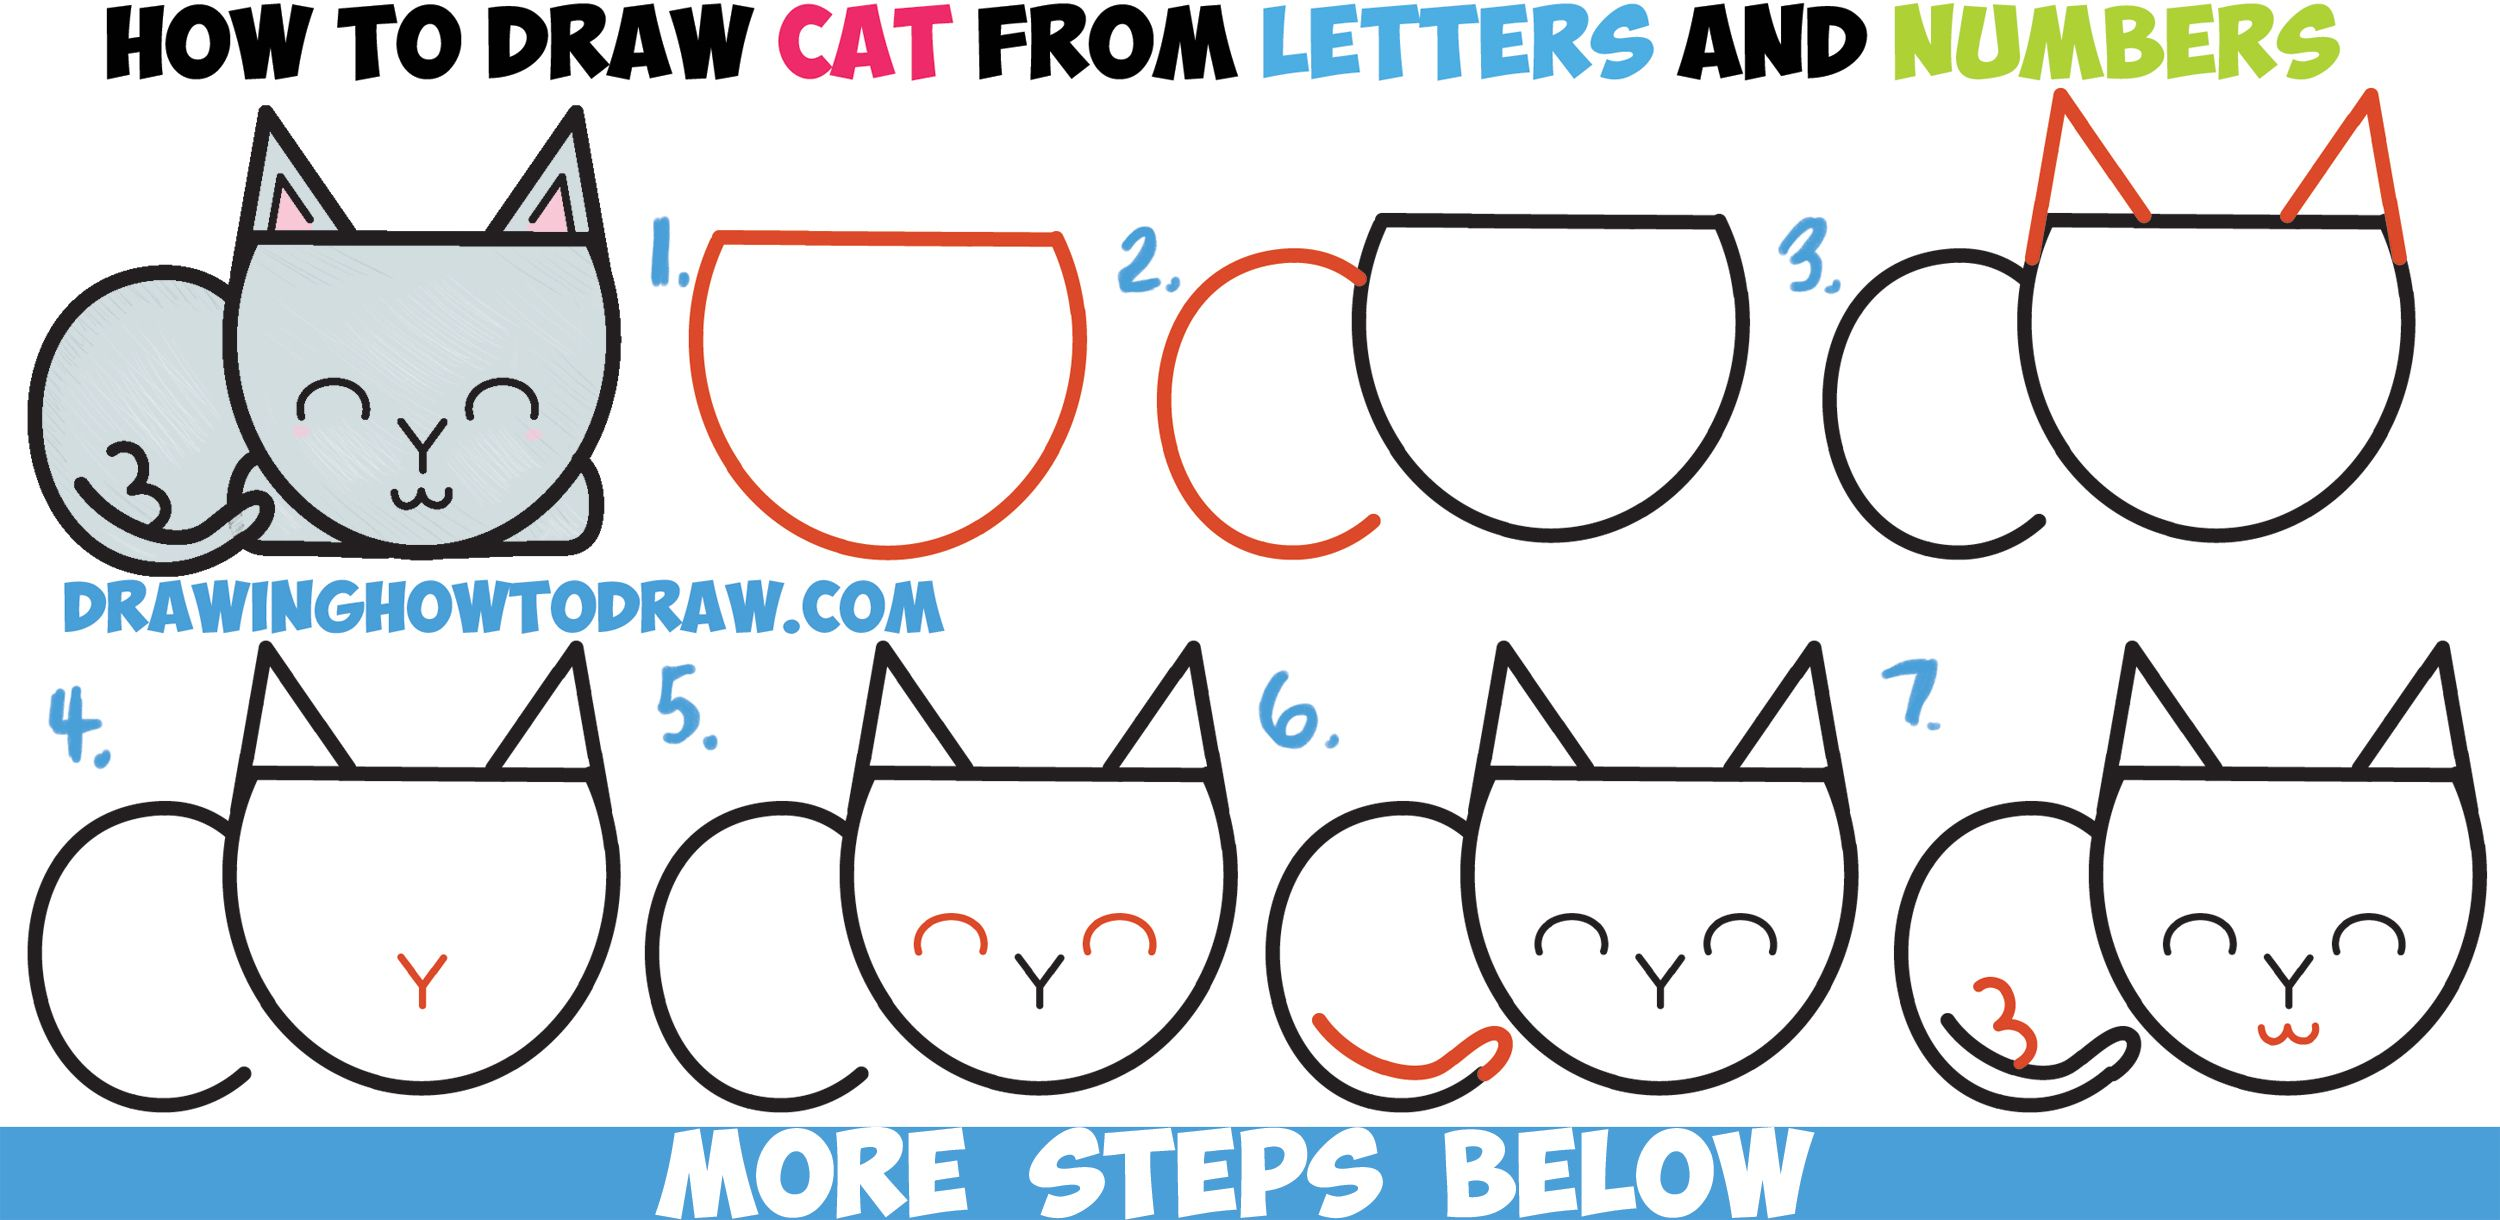 How To Draw A Cute Cartoon Cat Completely From Letters Numbers Shapes Easy Step By Step Drawing Tutorial For Kids How To Draw Step By Step Drawing Tutoria Drawing